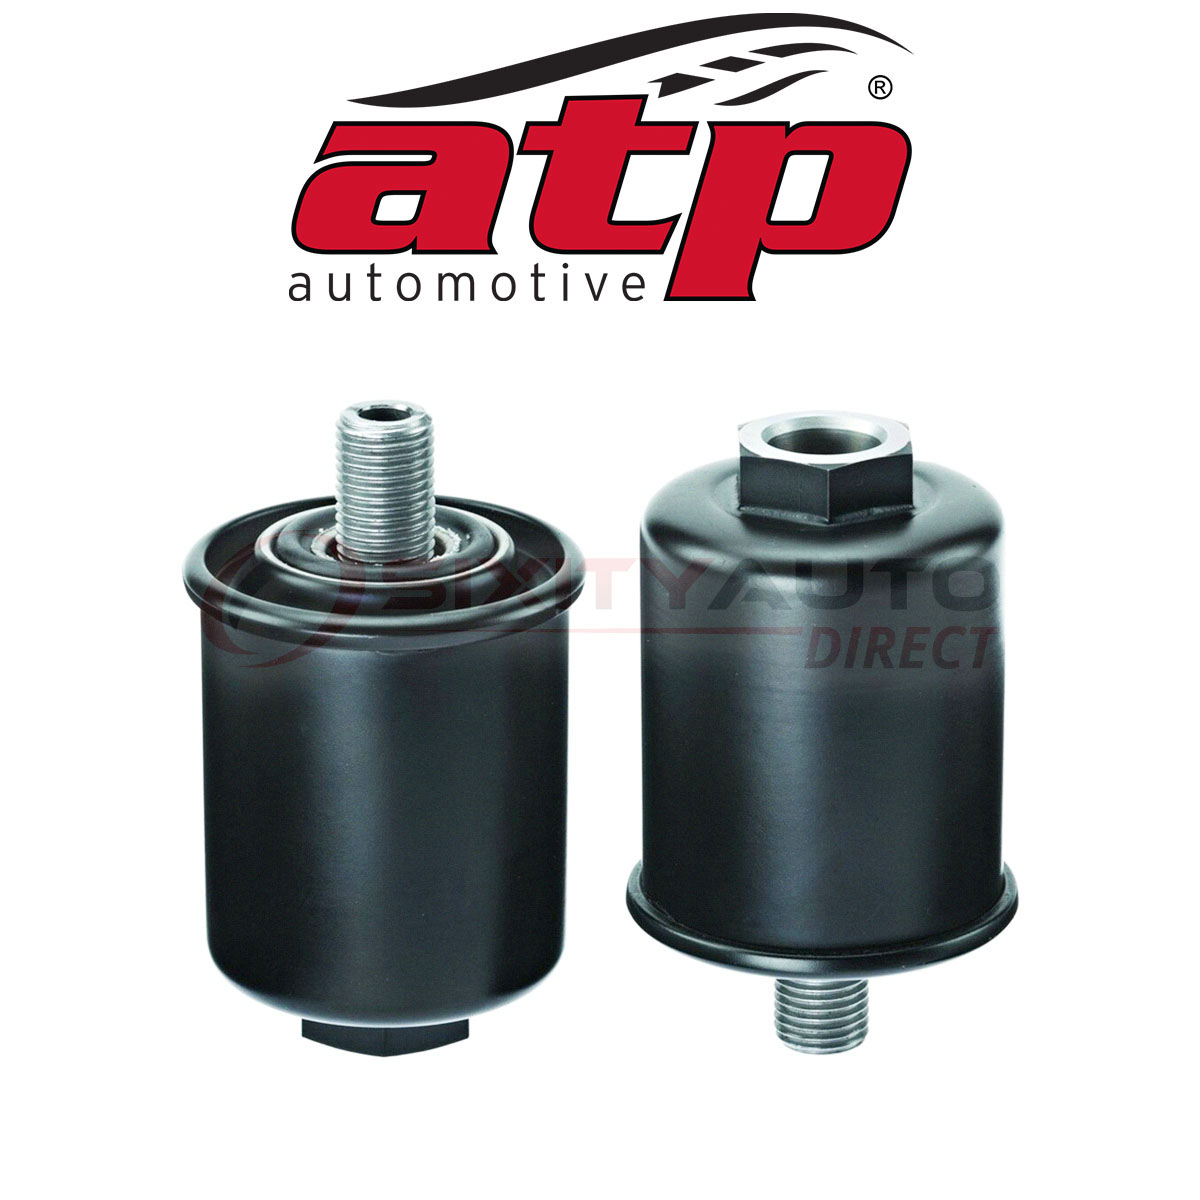 ATP Automotive Auto Transmission Filter For 2001-2002